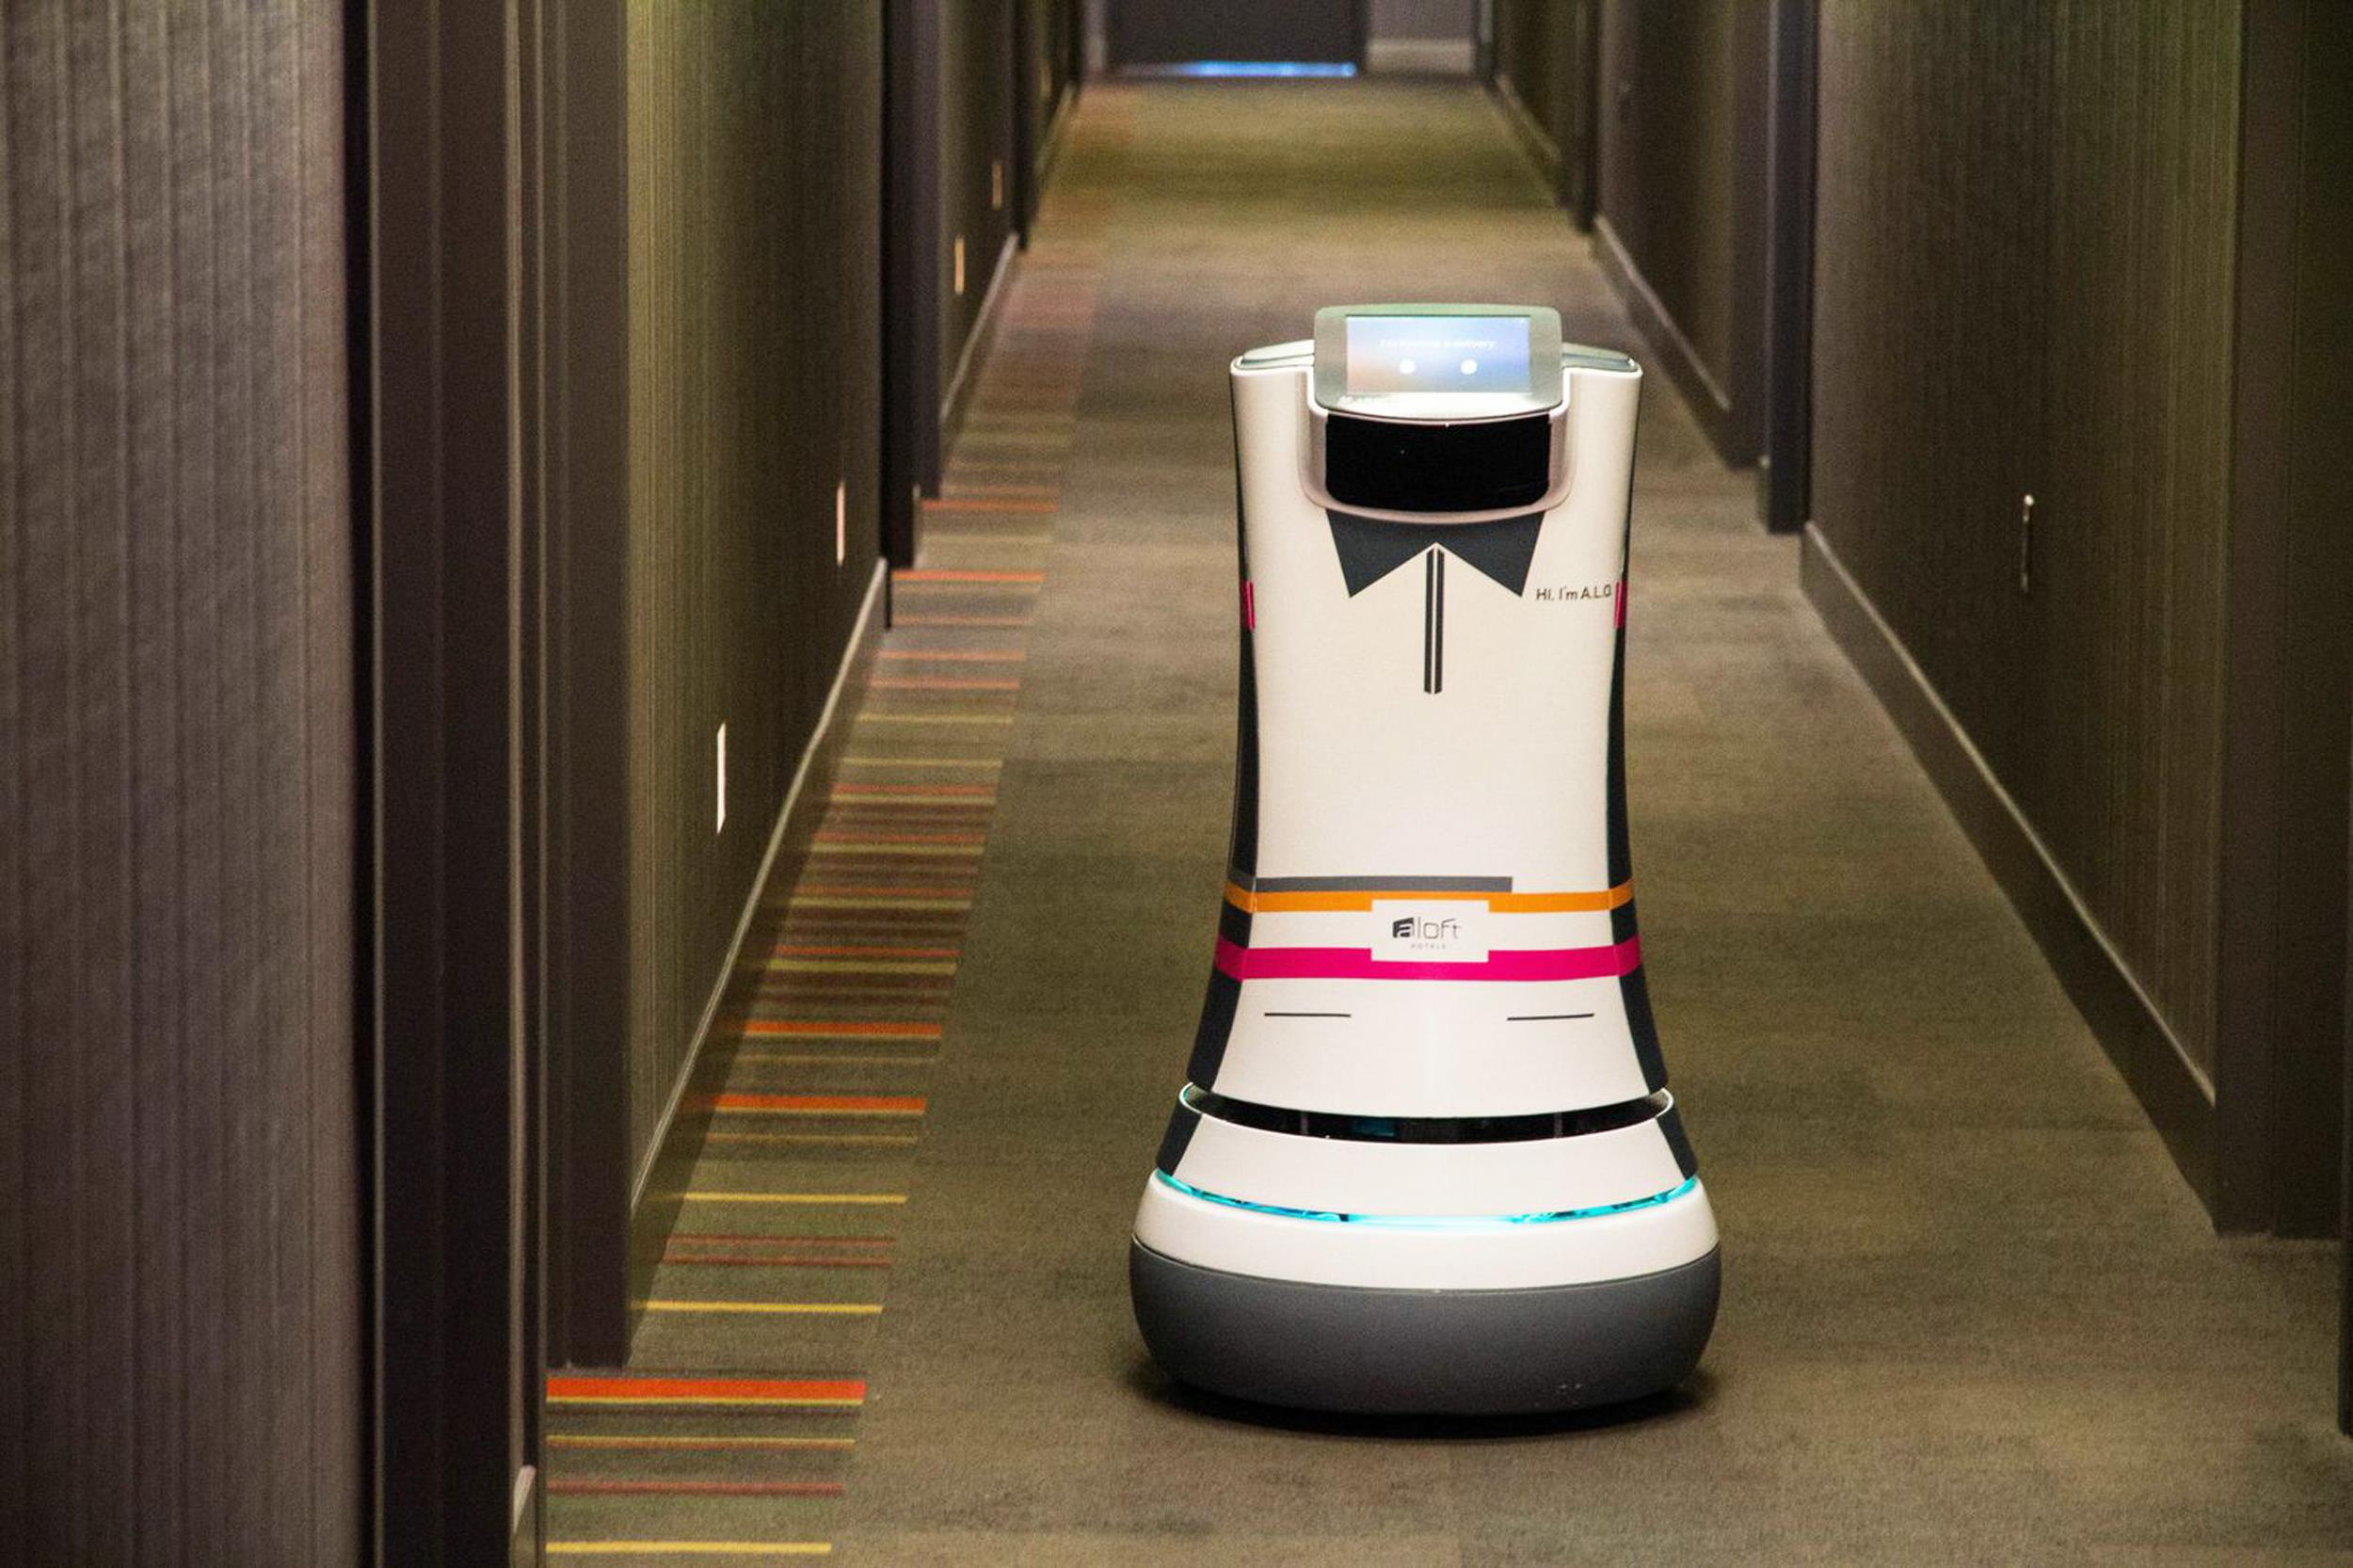 Robot Butlers Roll Into Action At Starwood Hotels Nbc News